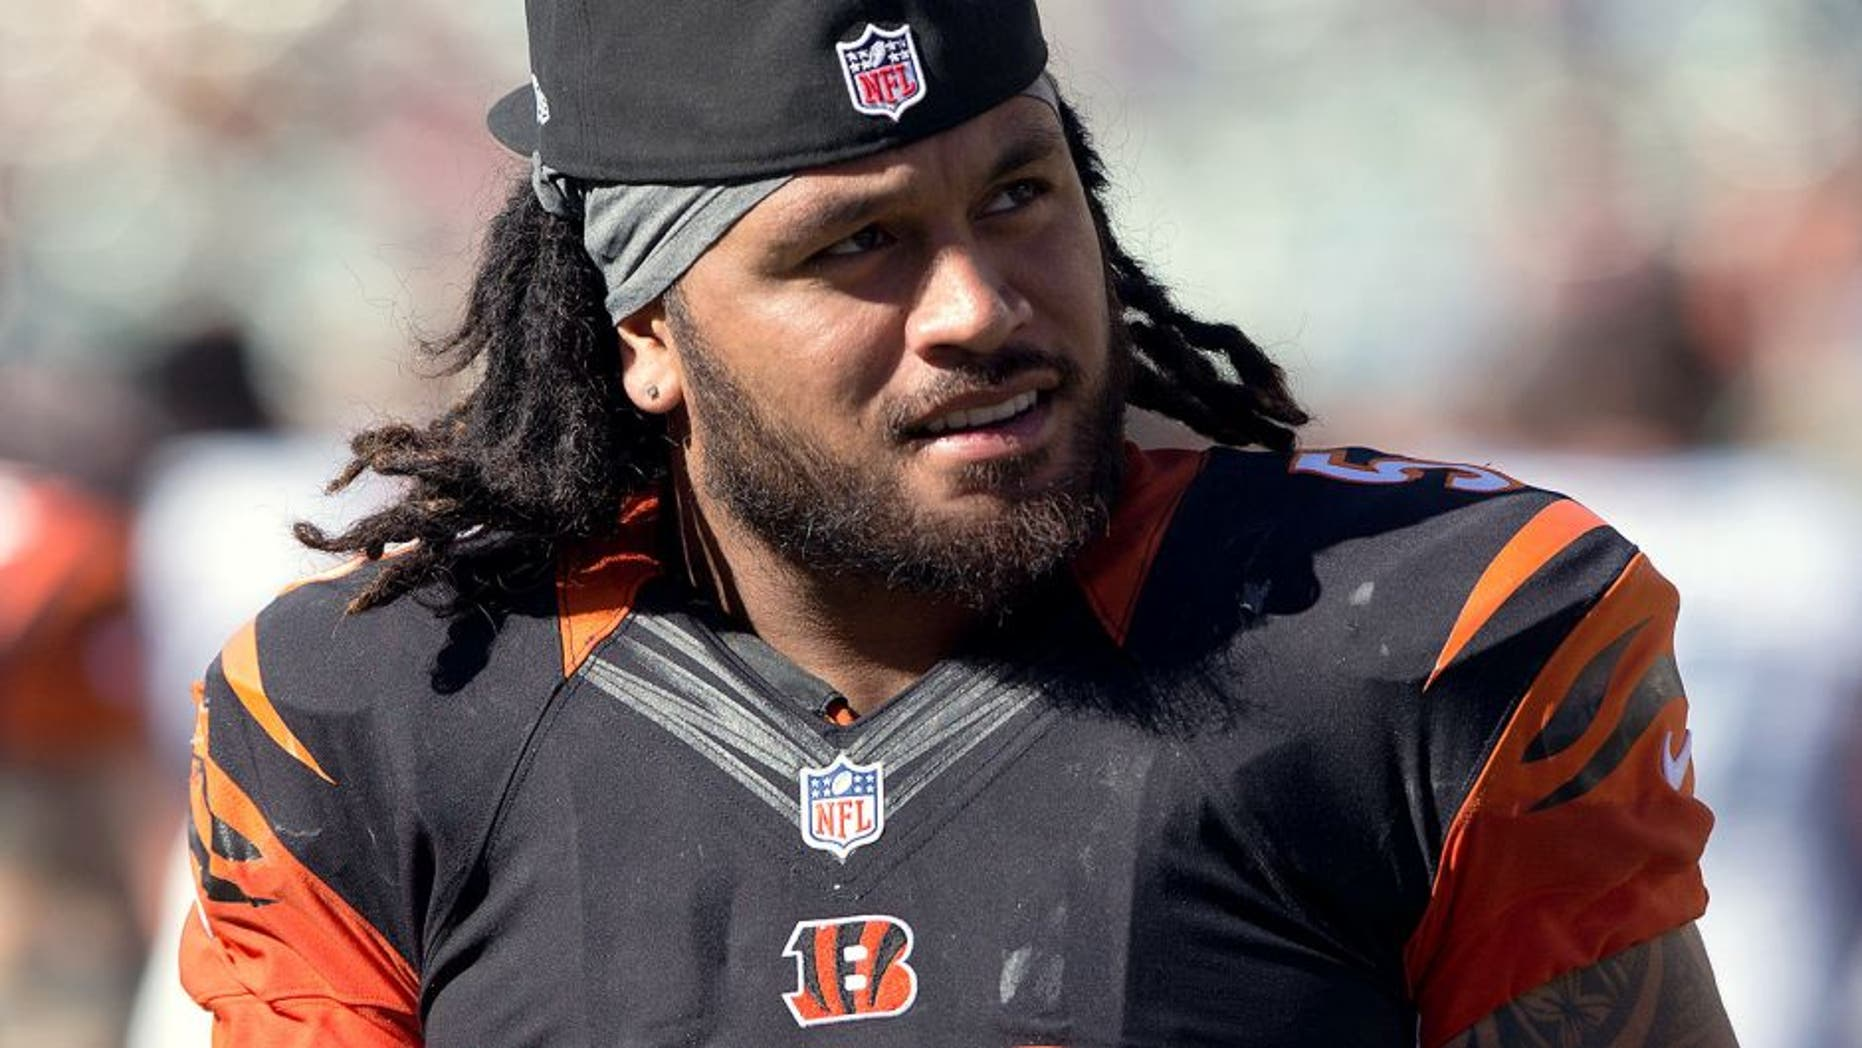 Sep 21, 2014; Cincinnati, OH, USA; Cincinnati Bengals middle linebacker Rey Maualuga (58) against the Tennessee Titans at Paul Brown Stadium. The Bengals won 33-7. Mandatory Credit: Aaron Doster-USA TODAY Sports